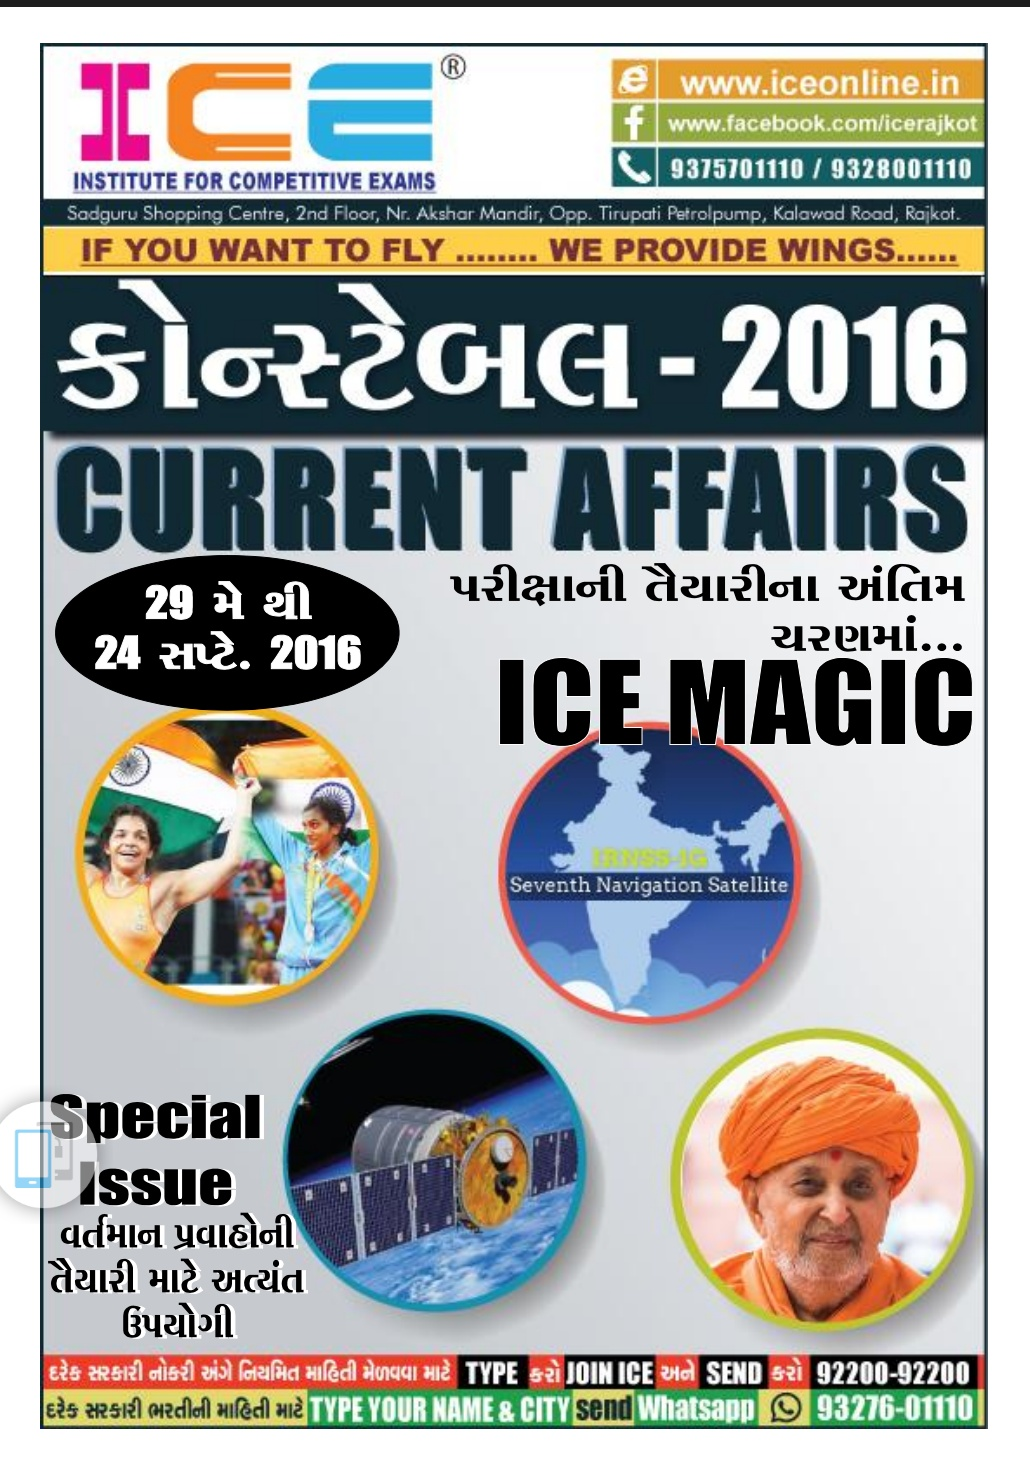 PSI and Constable Exam Most IMP Current Affairs) 2016 by ICE